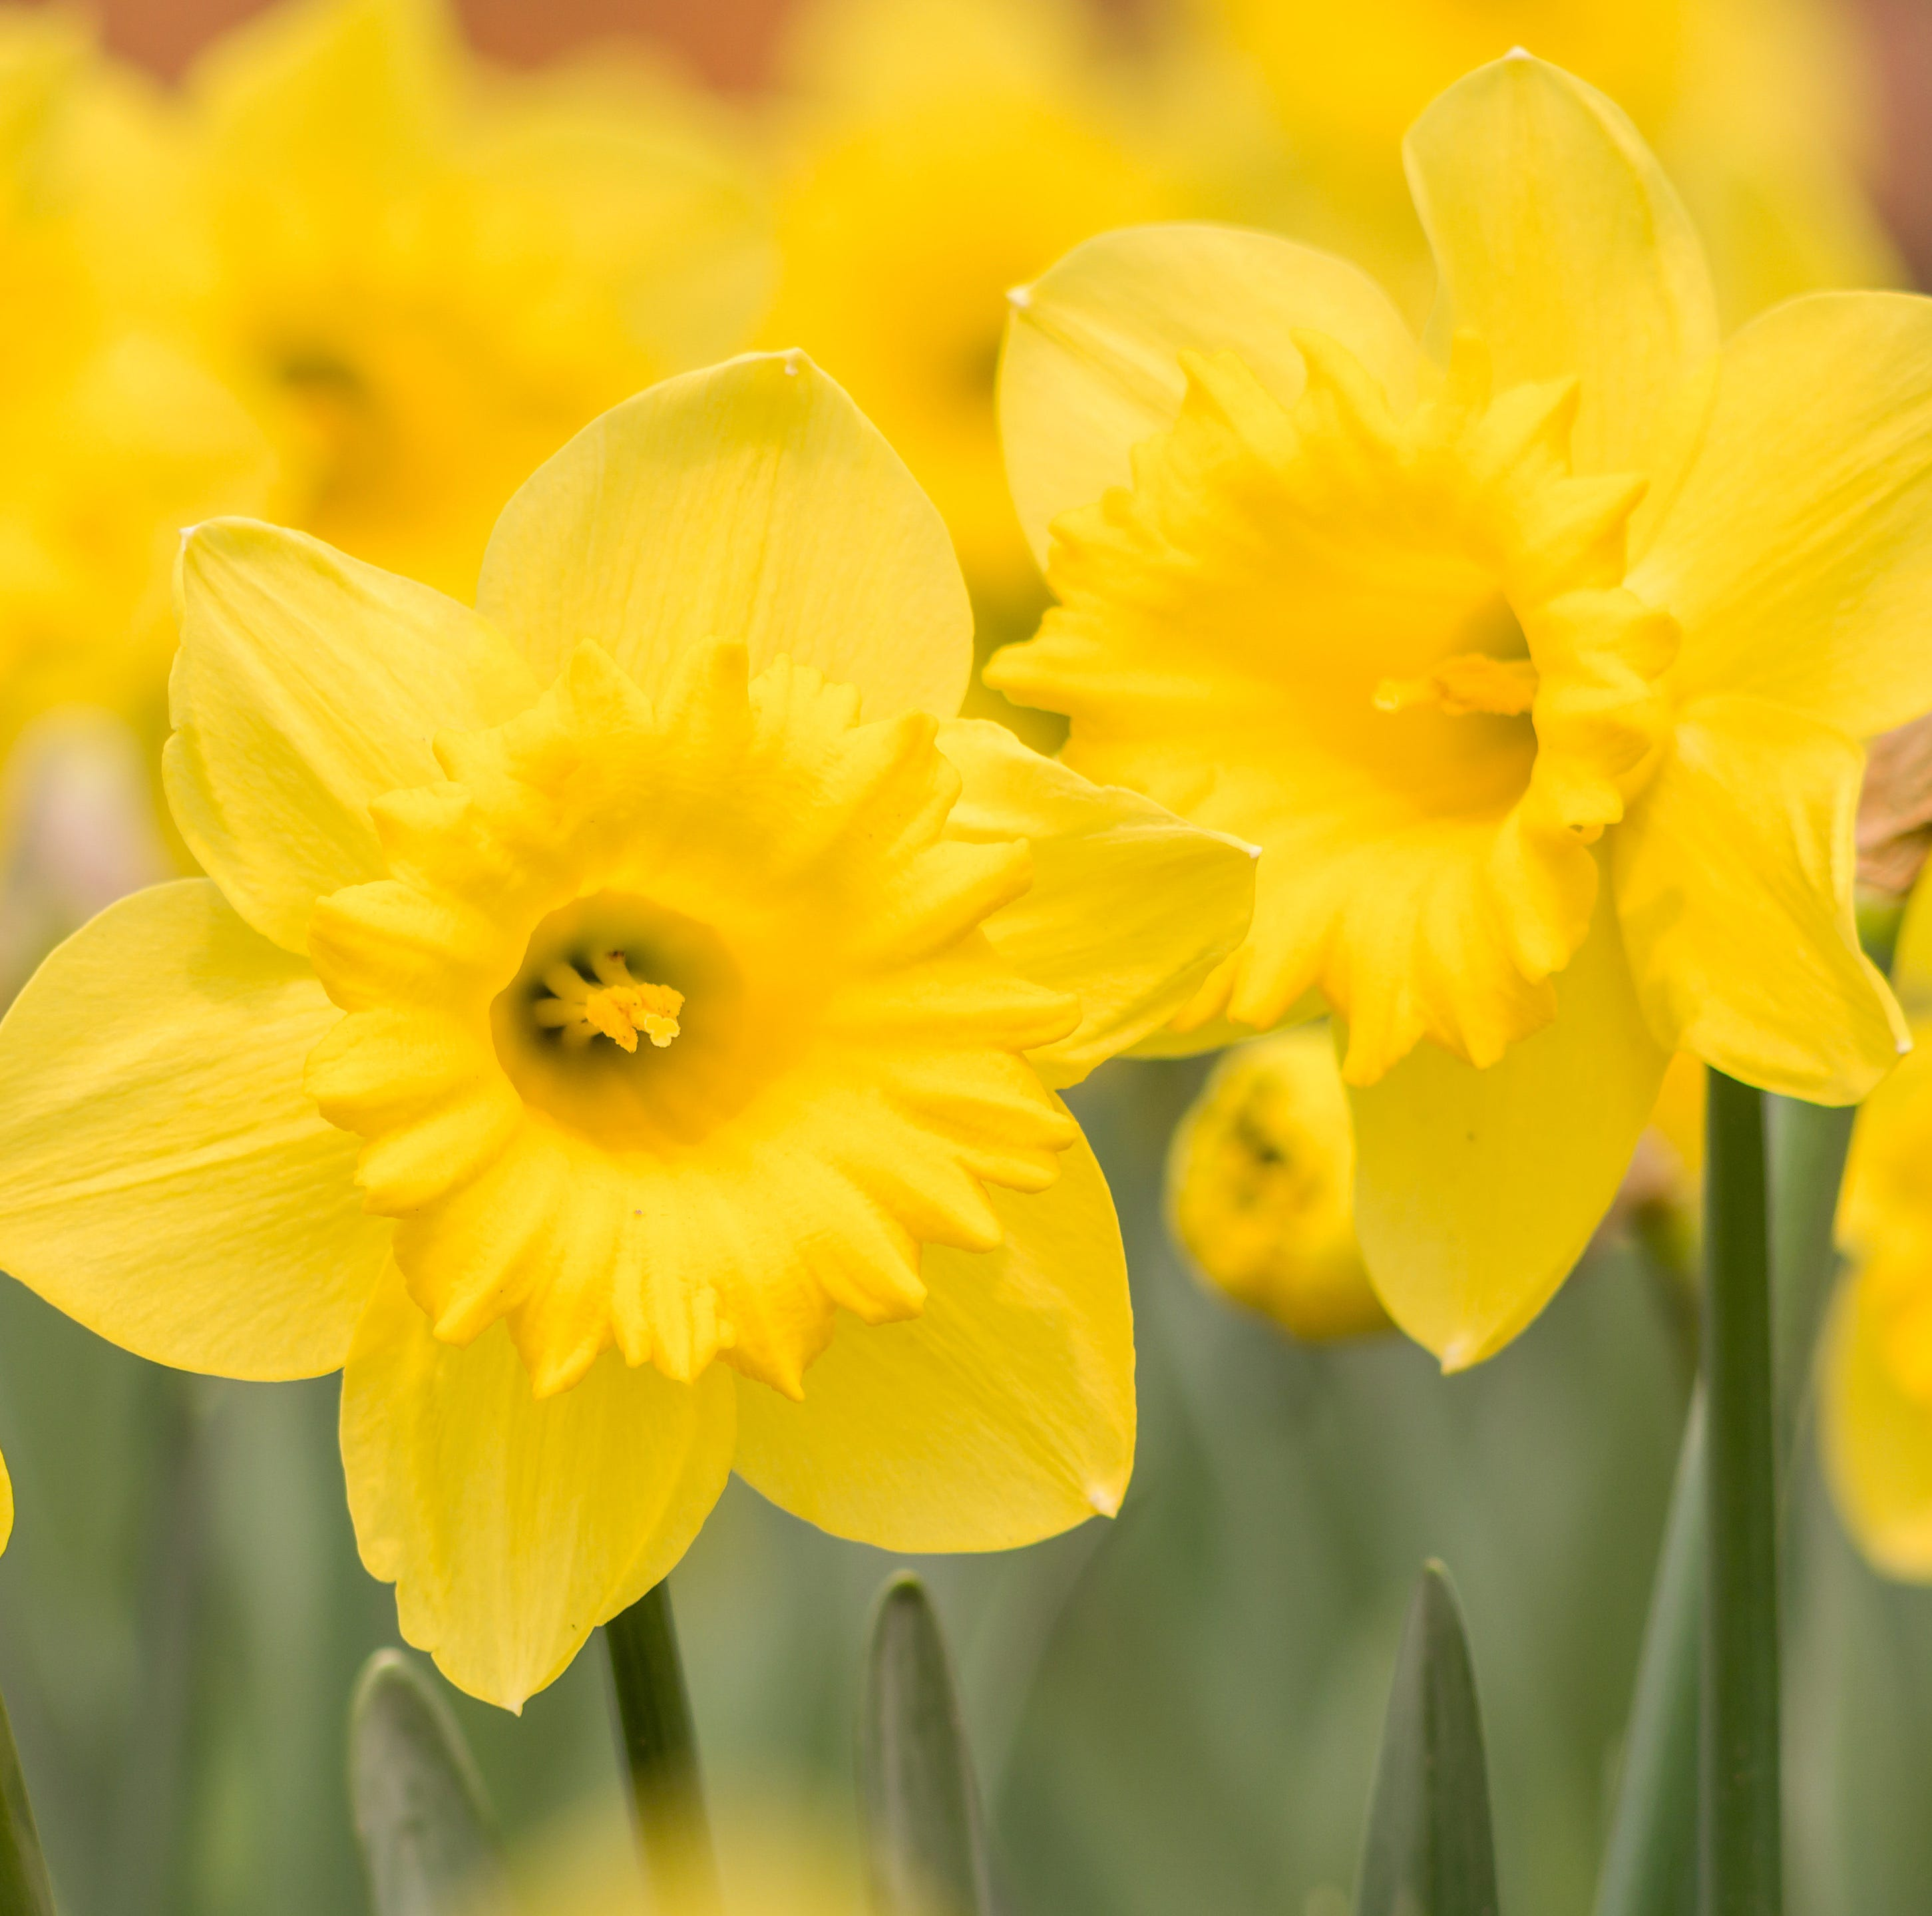 Get Up and Grow: Daffodils are the golden trumpets that herald spring